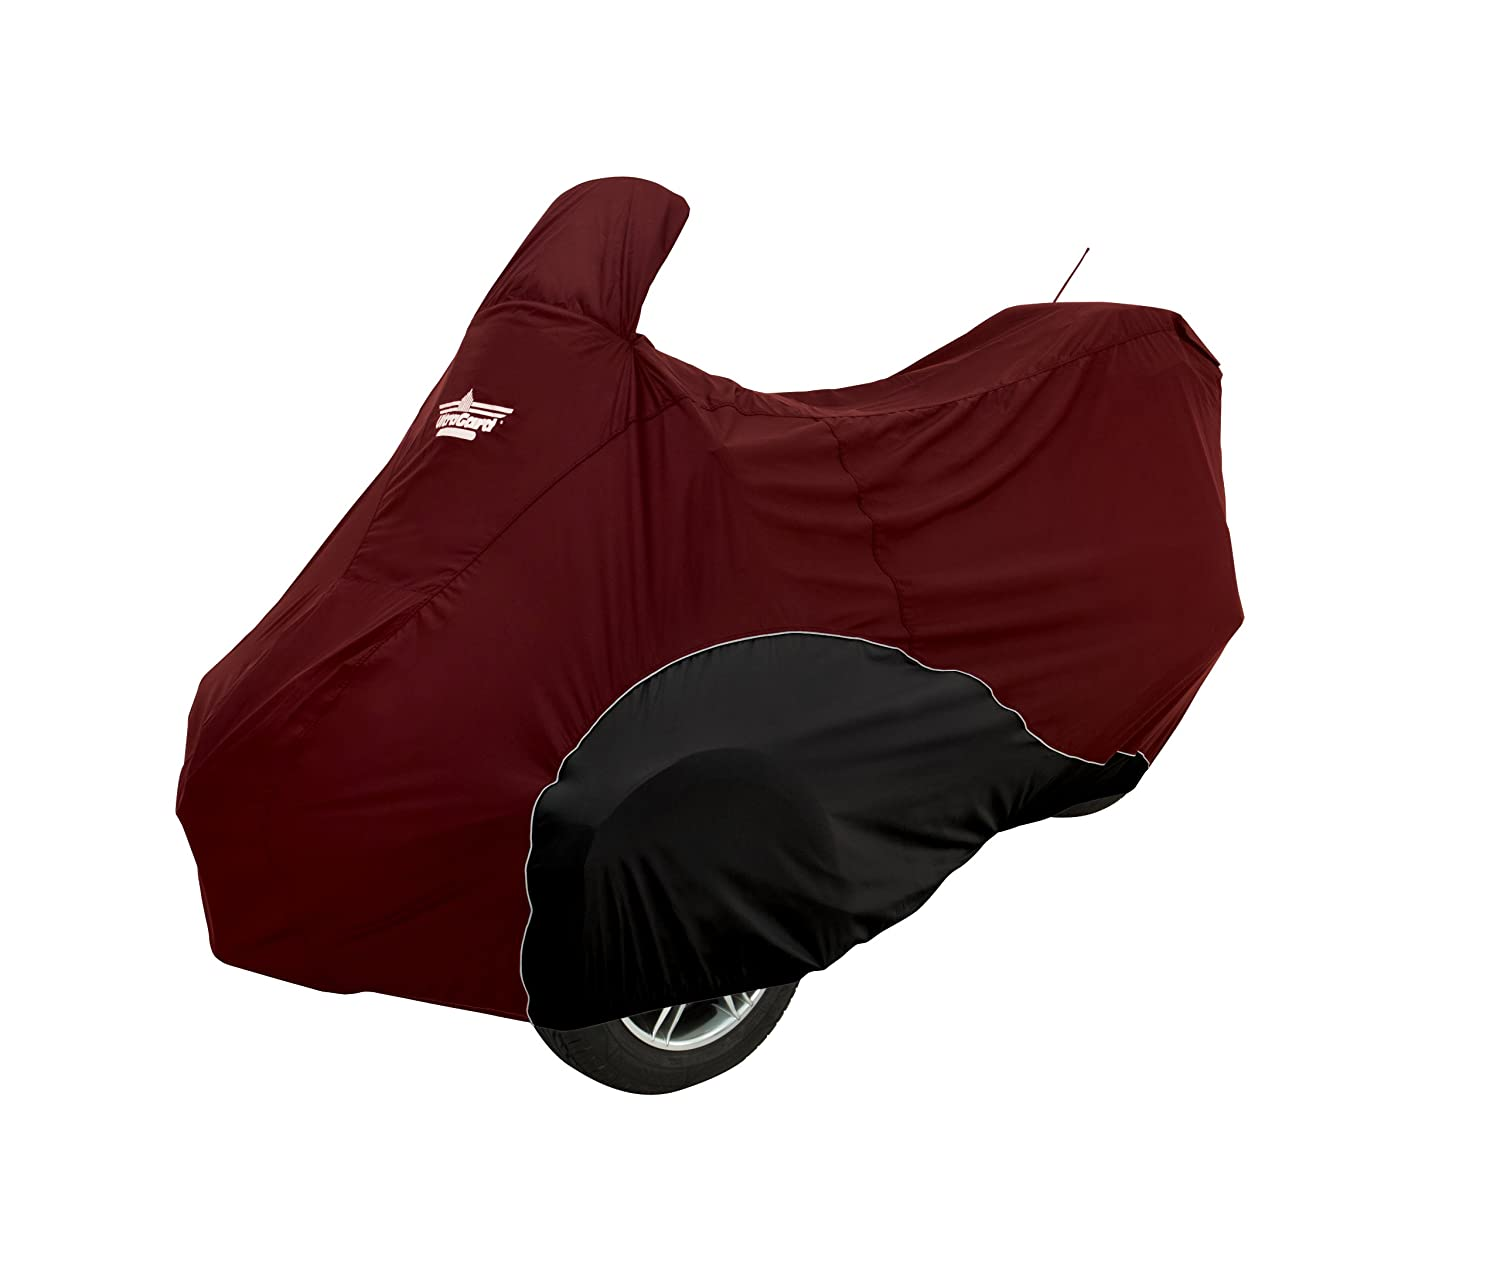 UltraGard 4-475BC Black//Charcoal Can-Am Spyder Cover